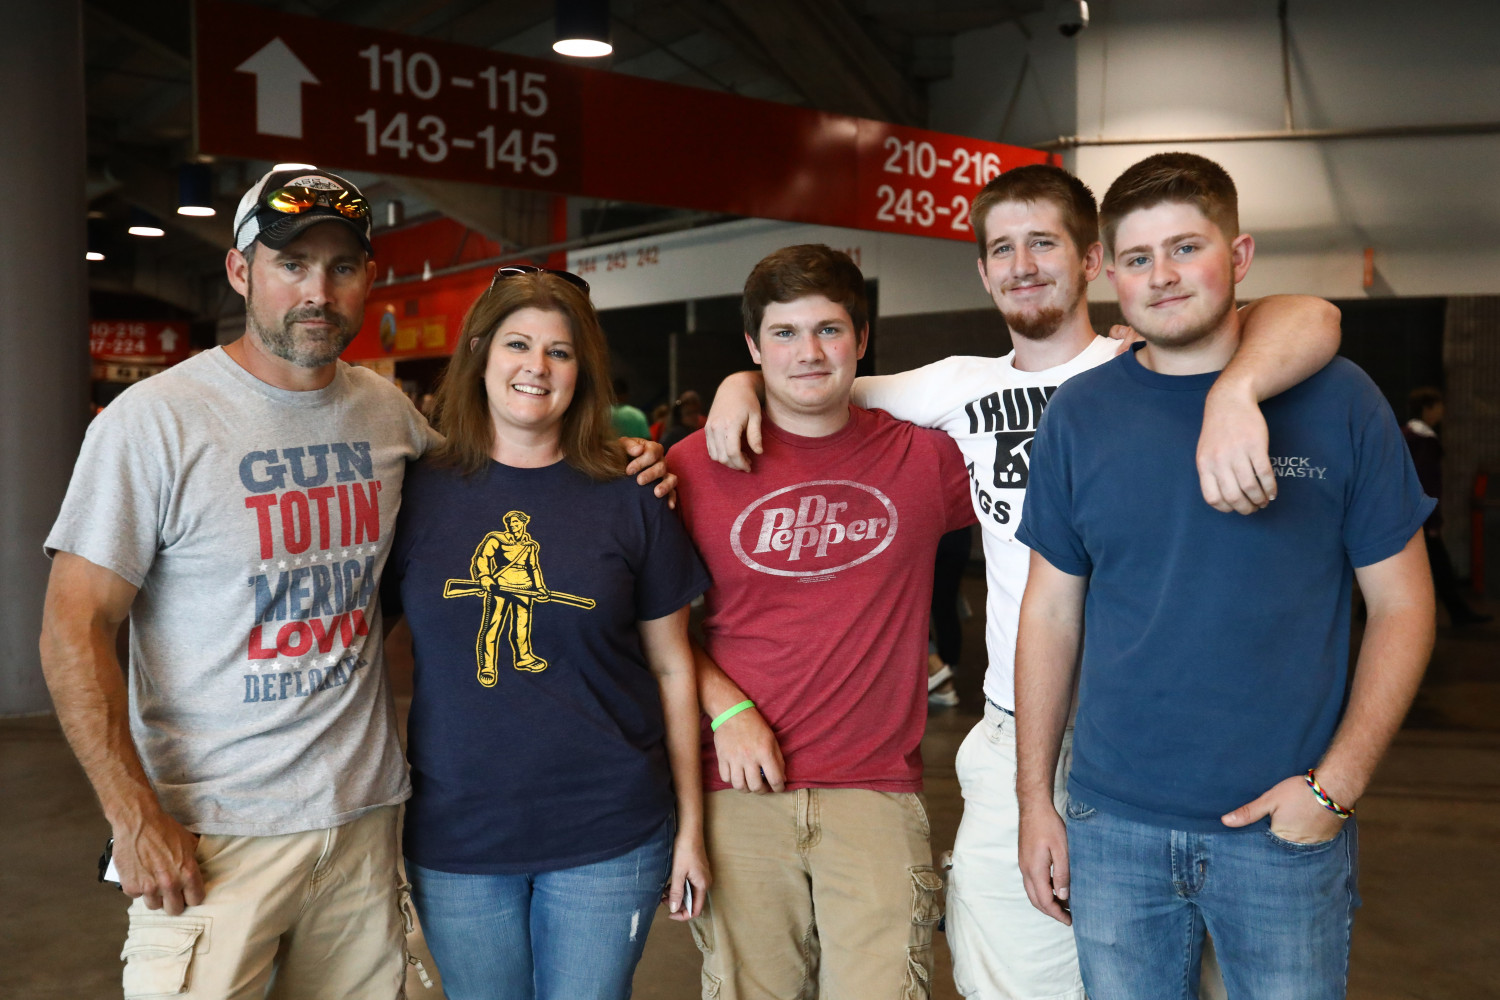 Dan Cooley (L) with wife and three sons before a Make America Great Again rally